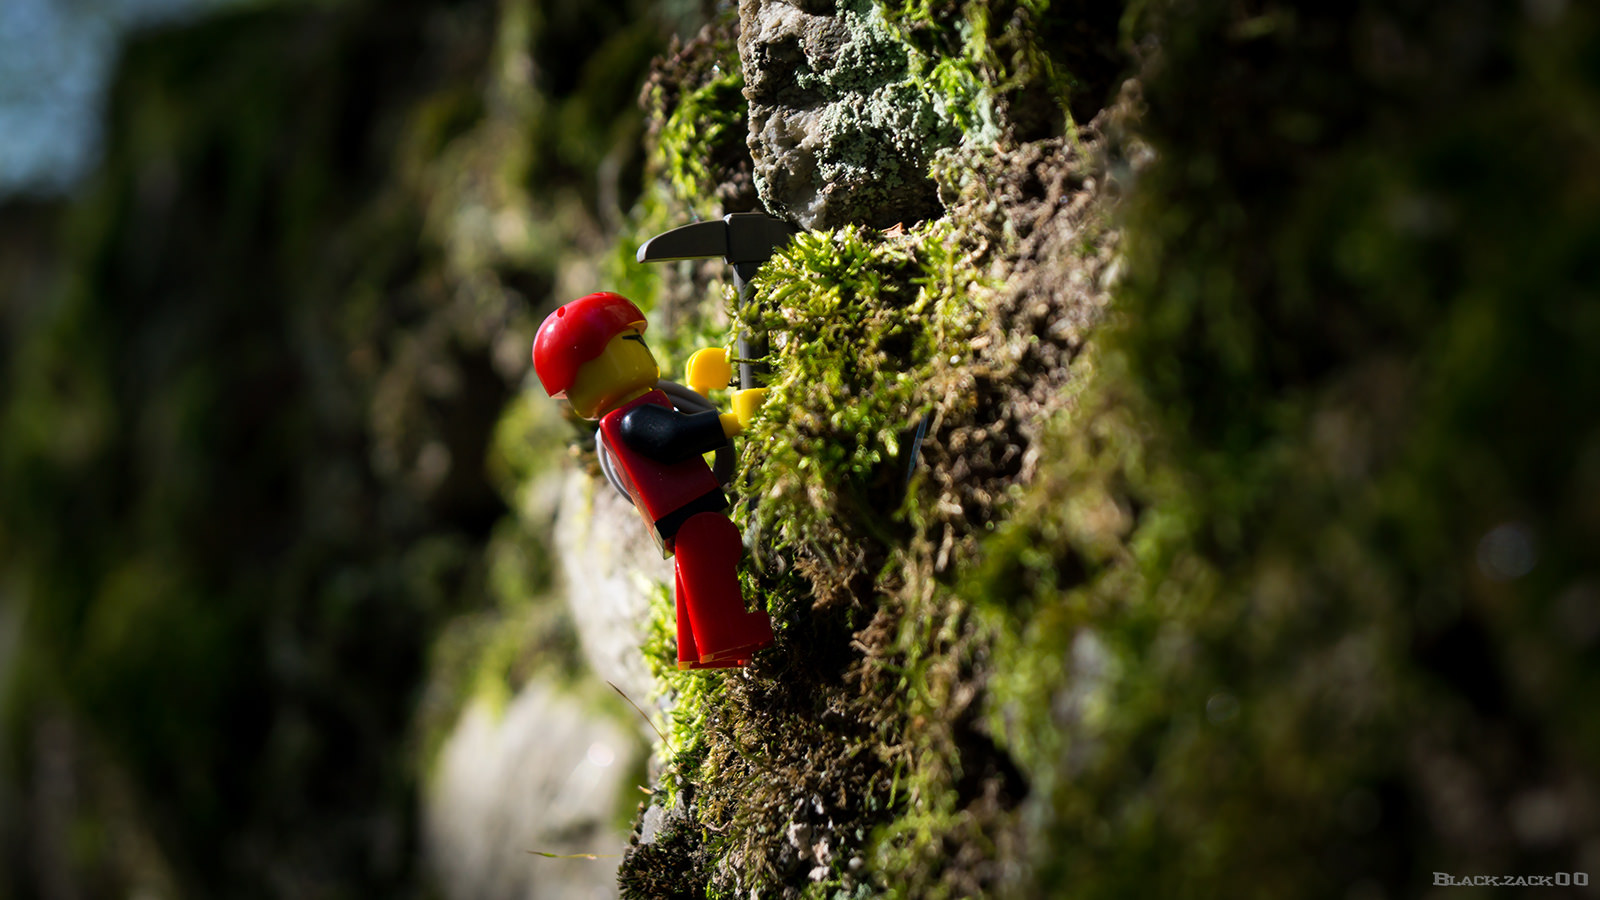 You're nearly there minifig! 'Small Climb' by  Black Zack (CC BY-NC-SA 2.0)